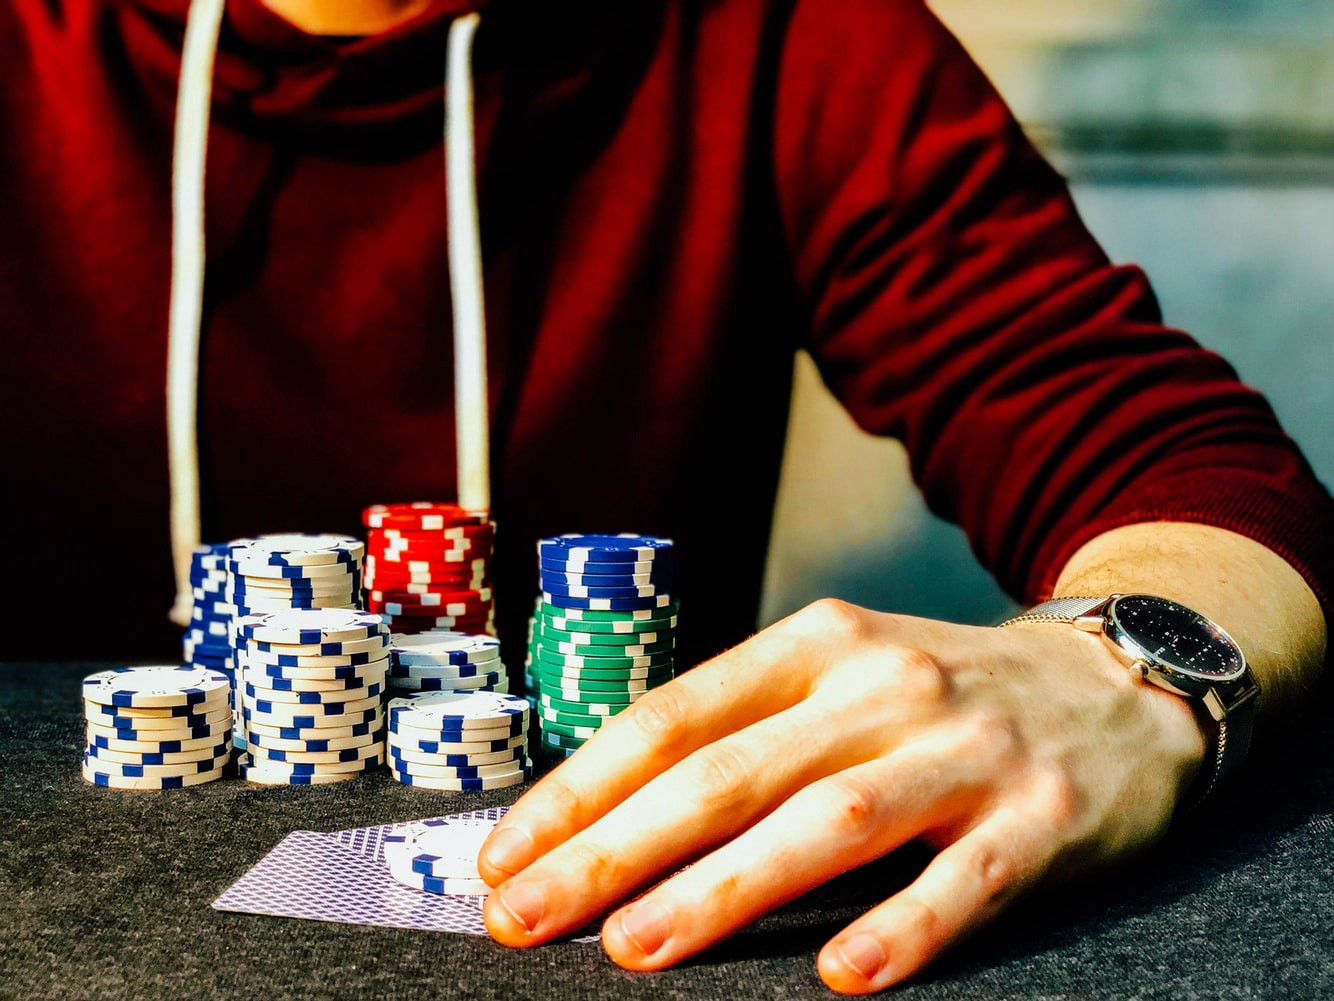 Placing a bet with cards and piles of chips.